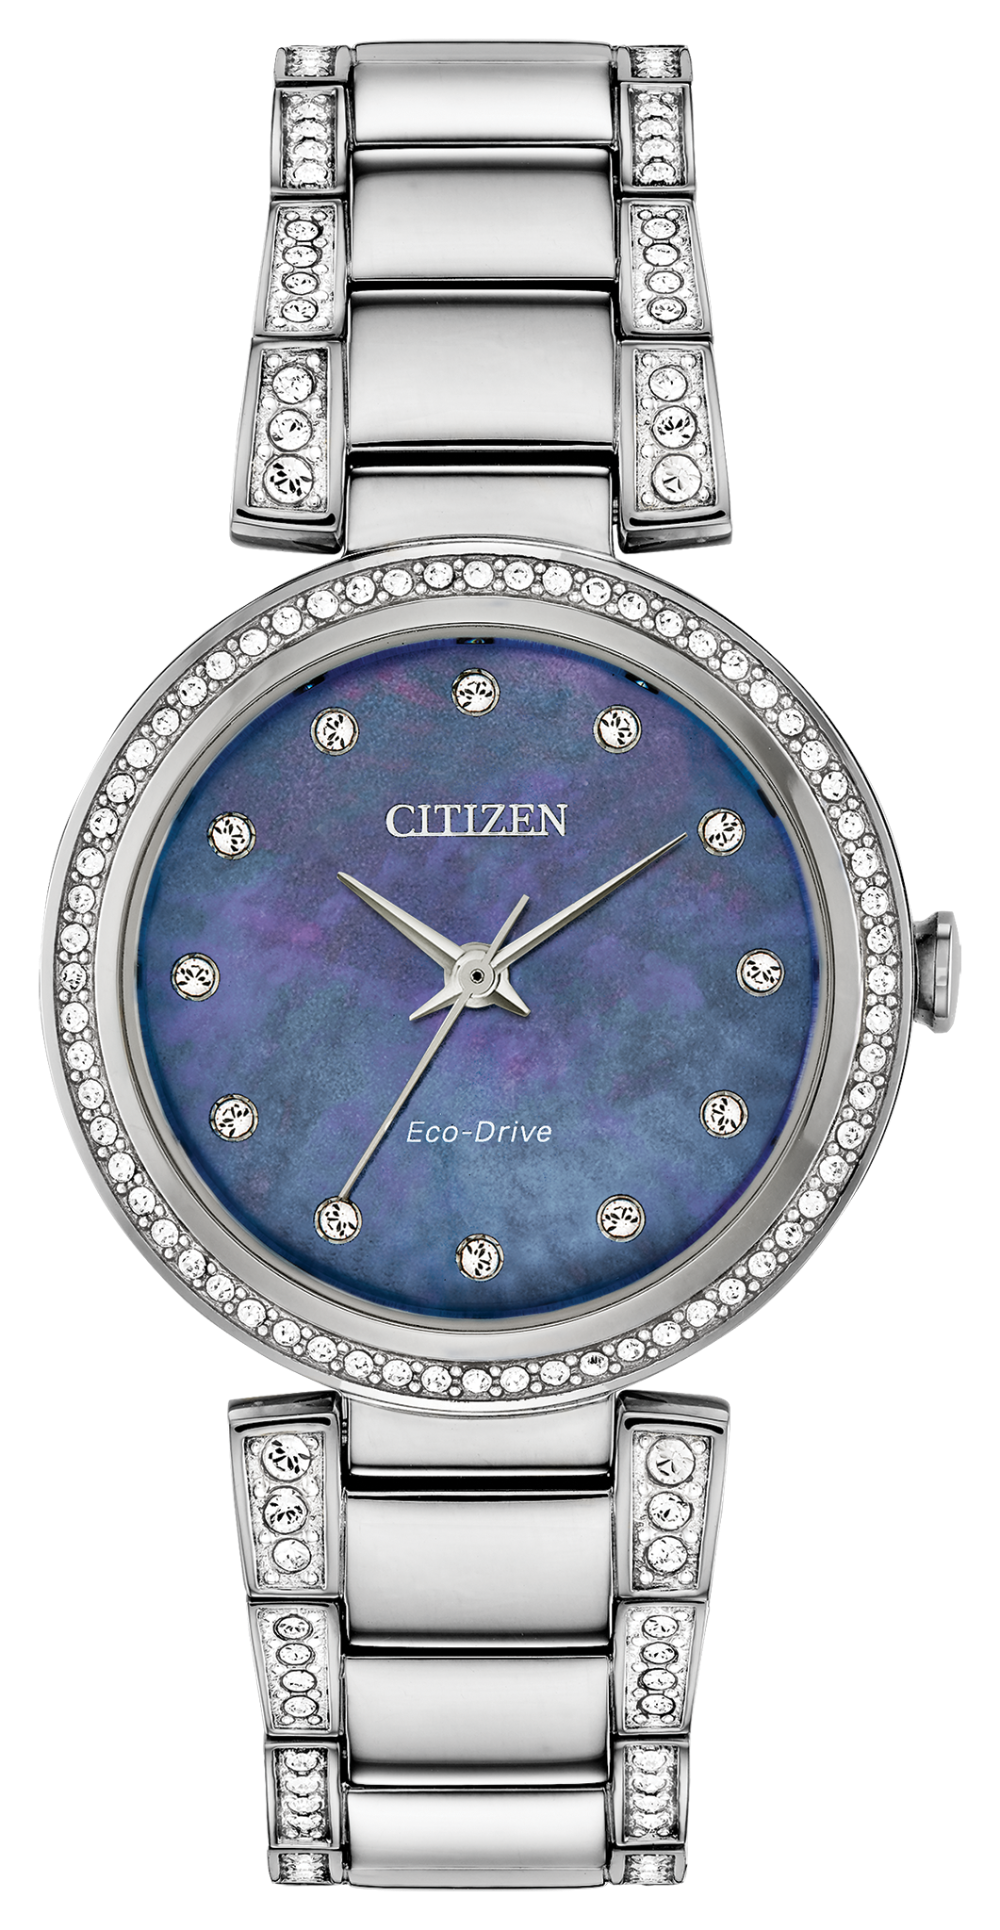 Silhouette Crystal Blue Mother-of-Pearl - Citizen Eco Drive